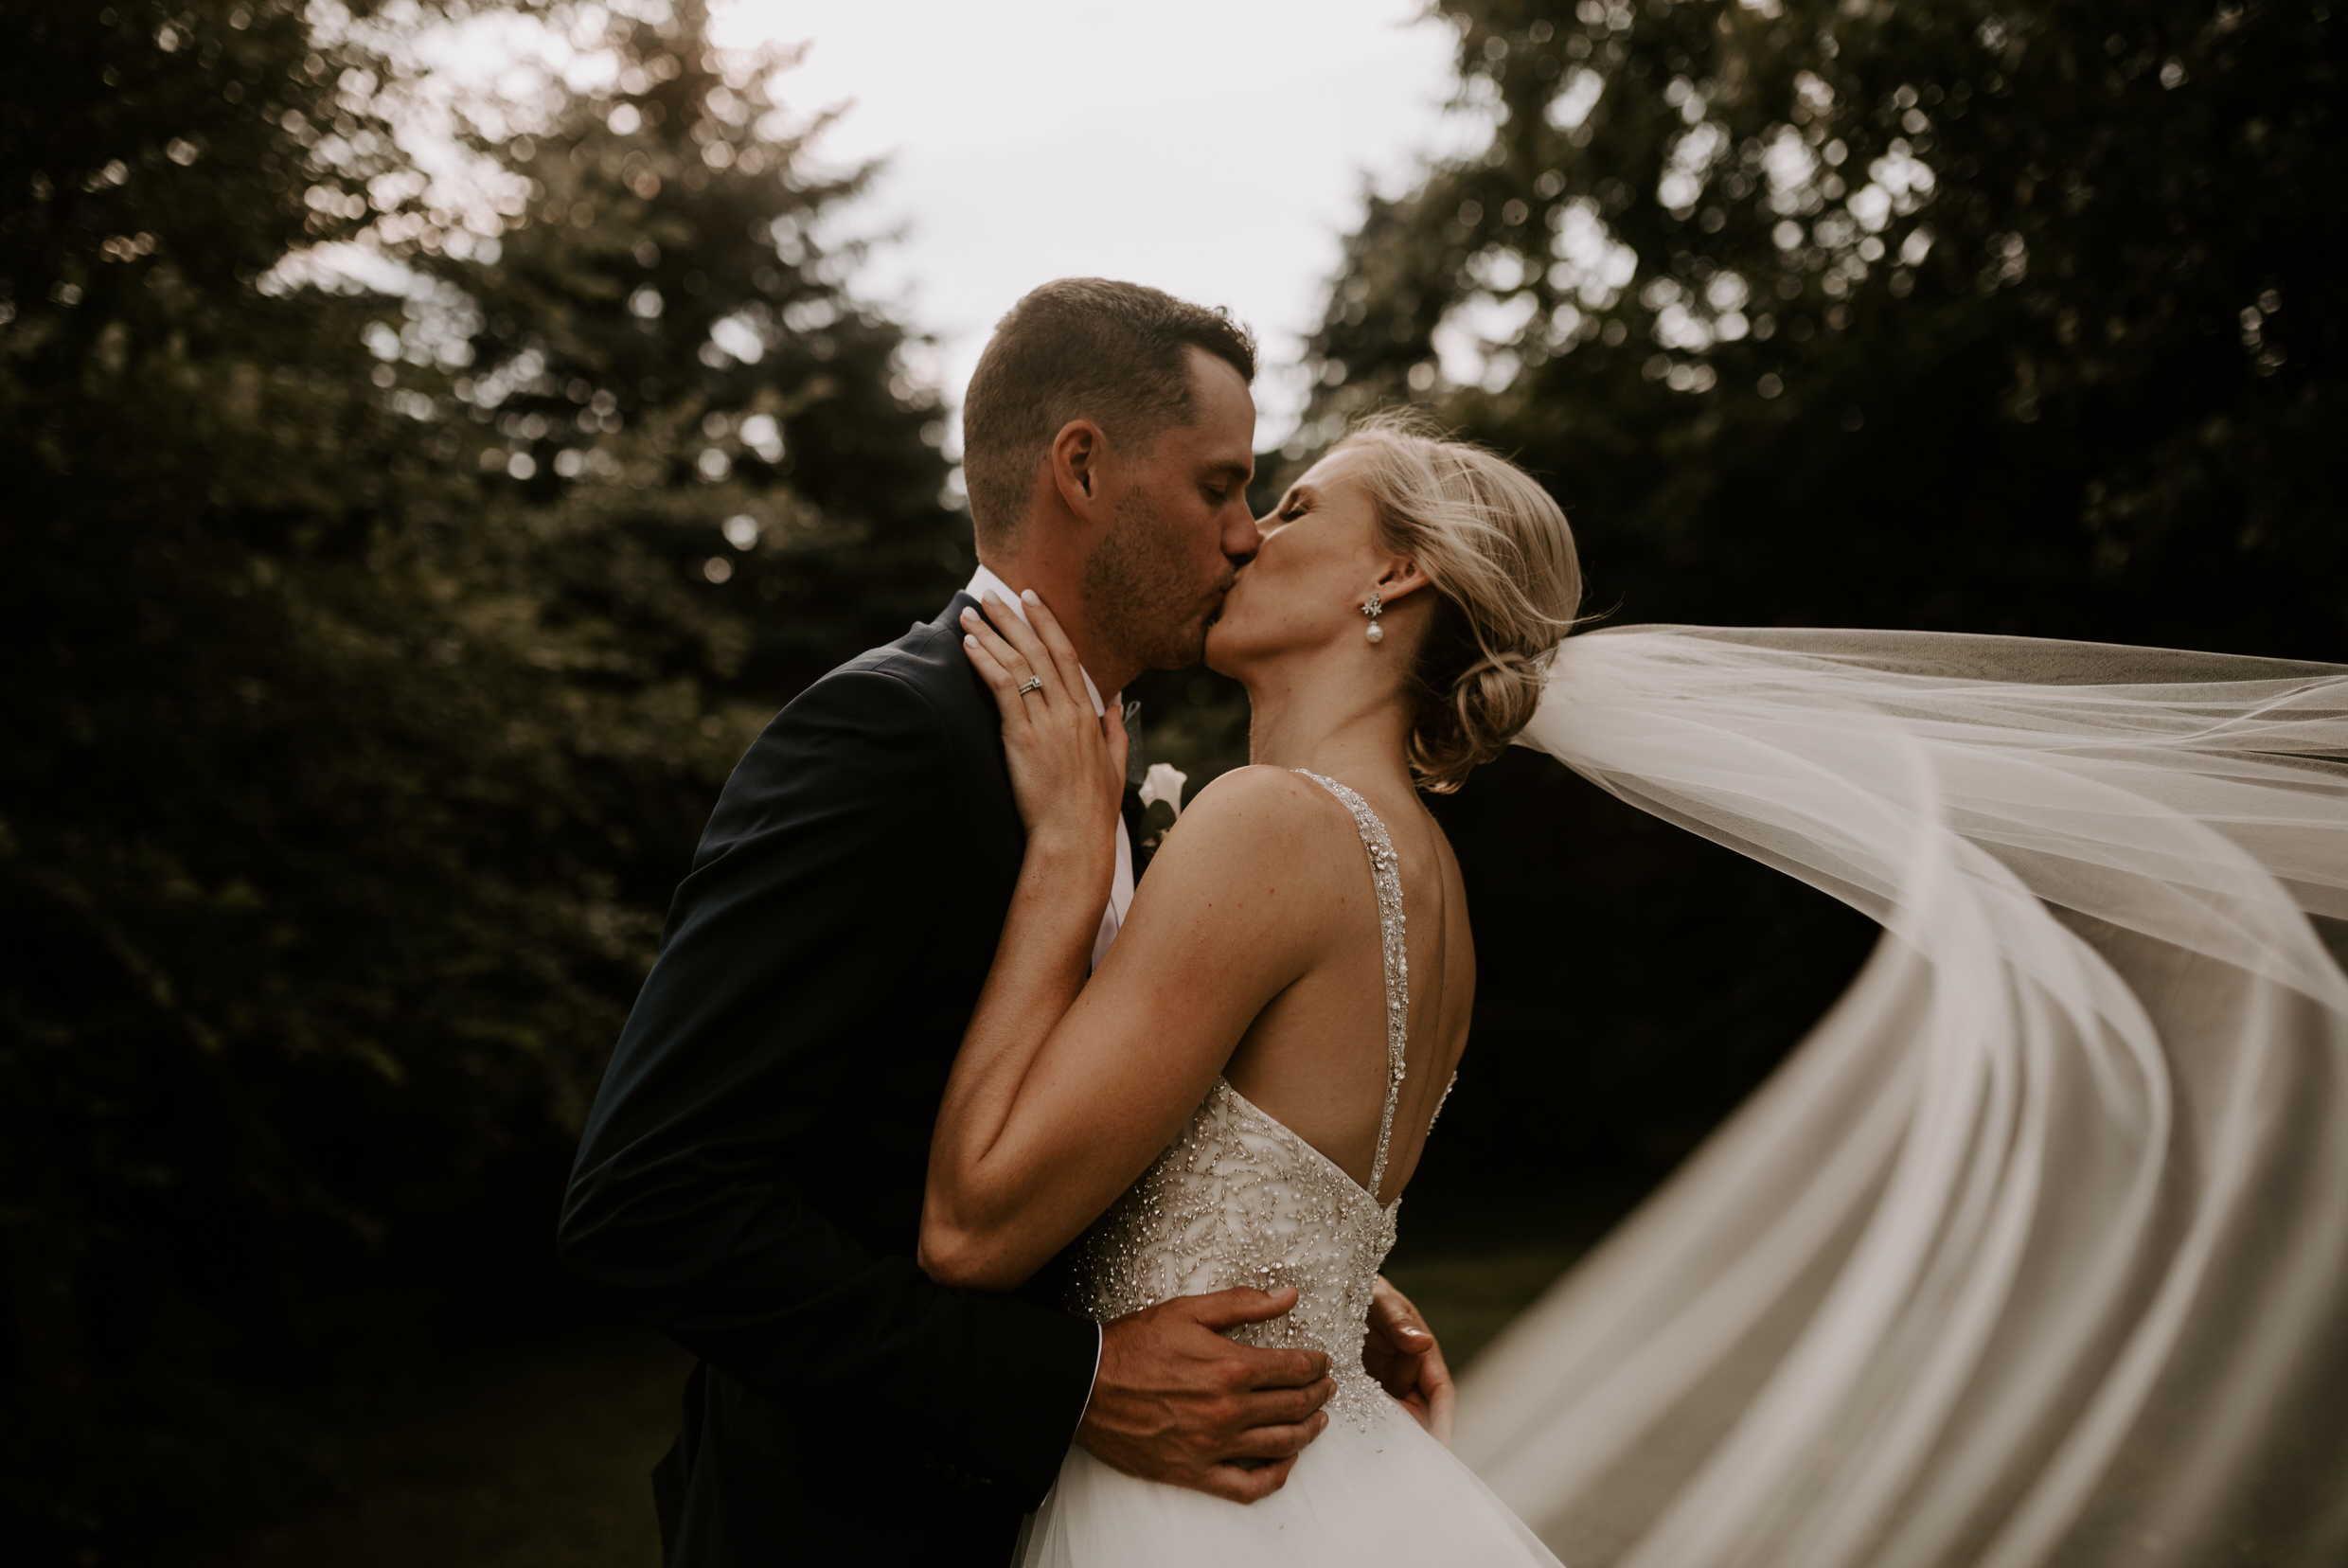 Belcroft Estates Wedding - bride and groom kissing veil